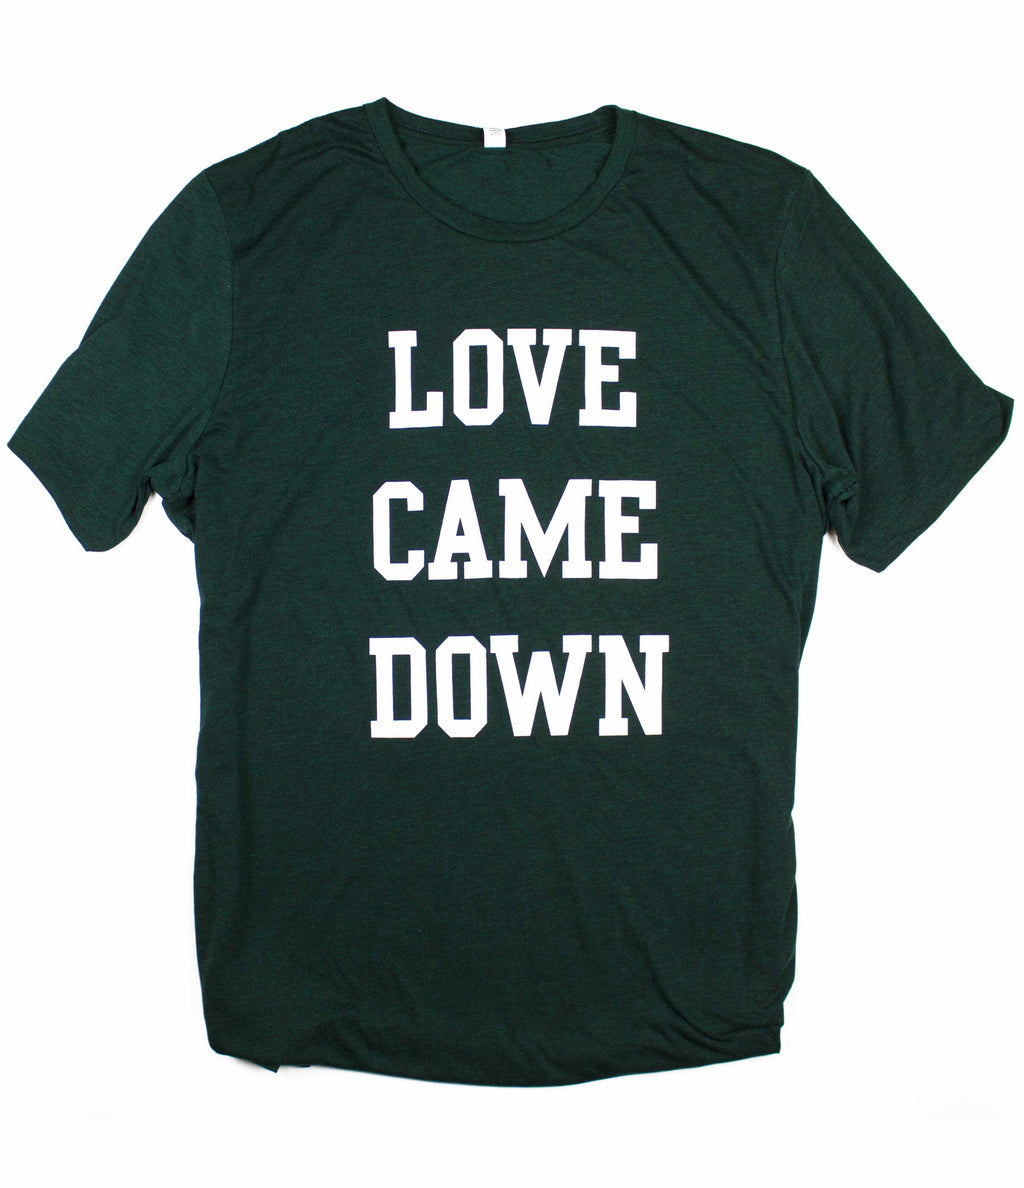 LOVE CAME DOWN FOREST T-SHIRT